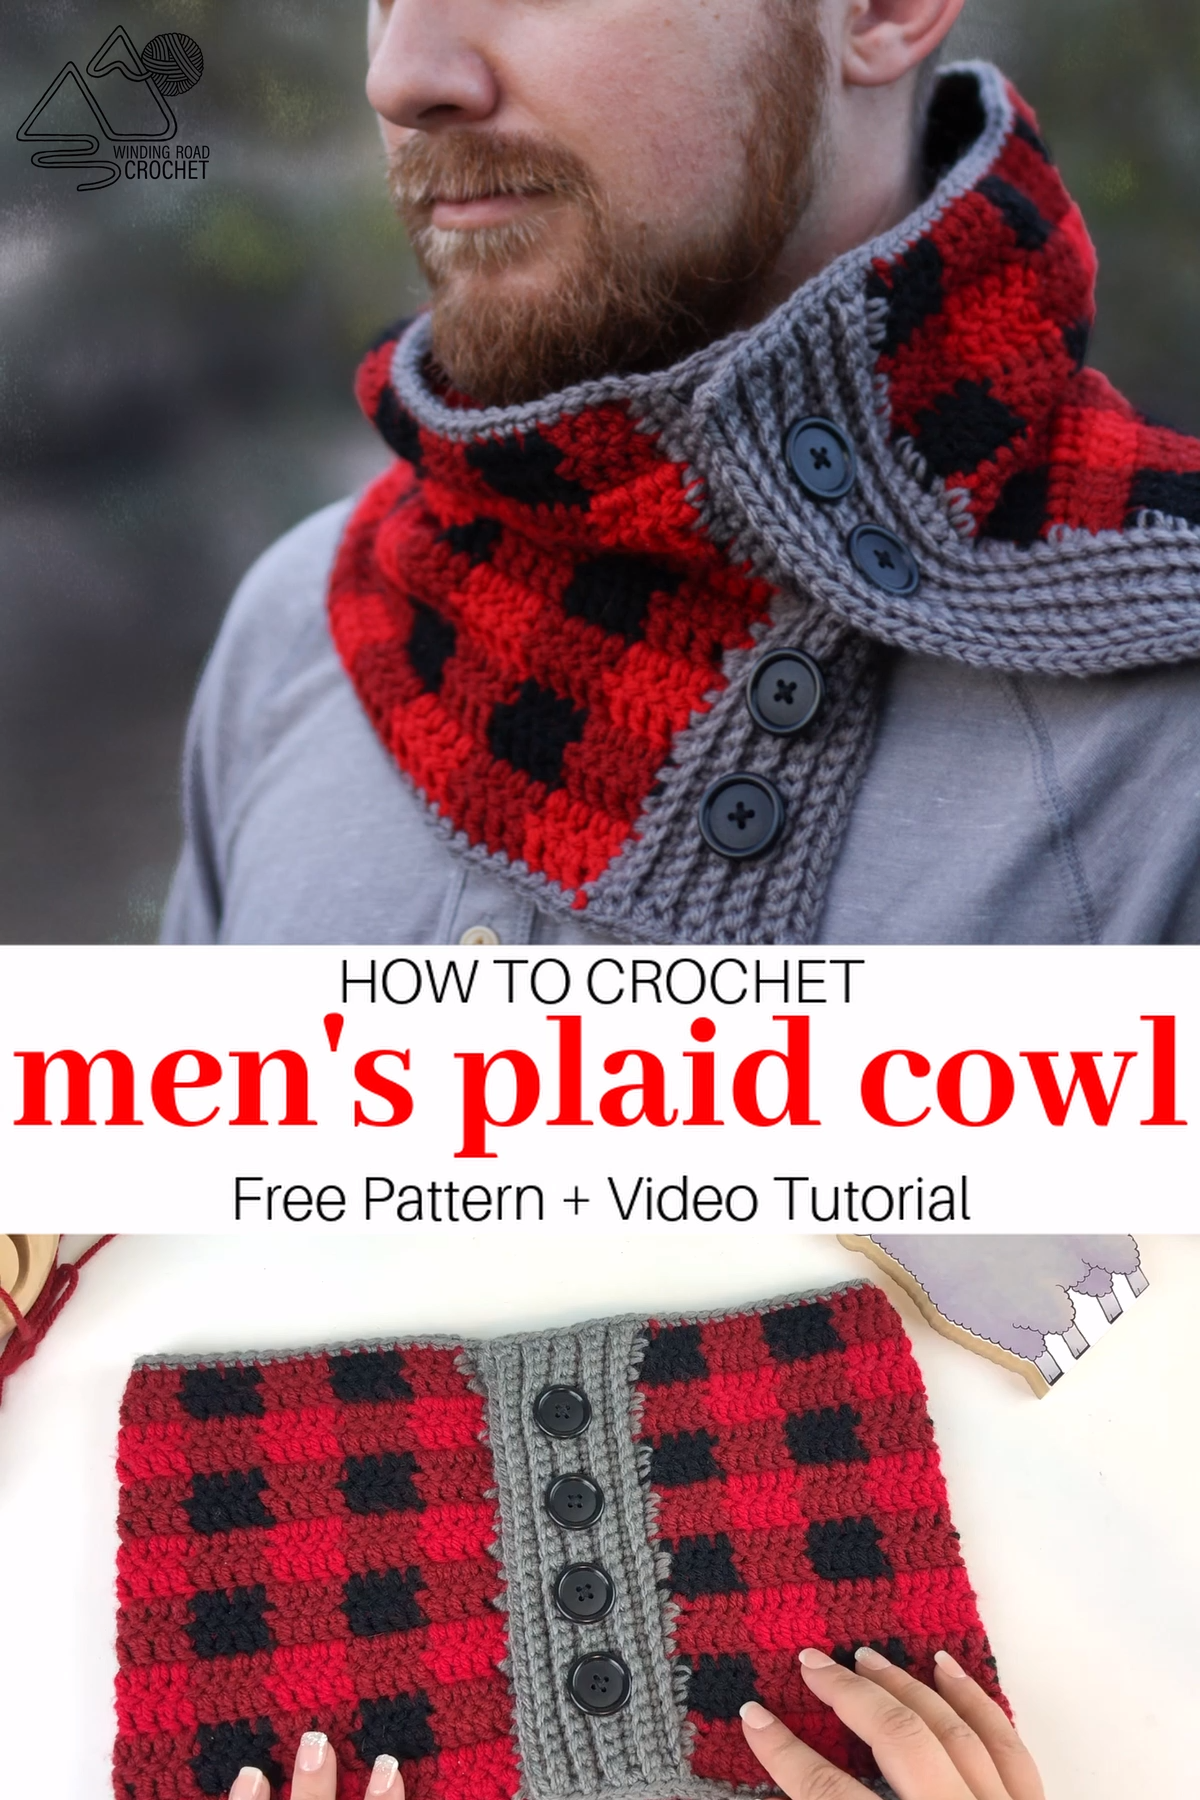 Men's Plaid Cowl Crochet Pattern and Video Tutorial